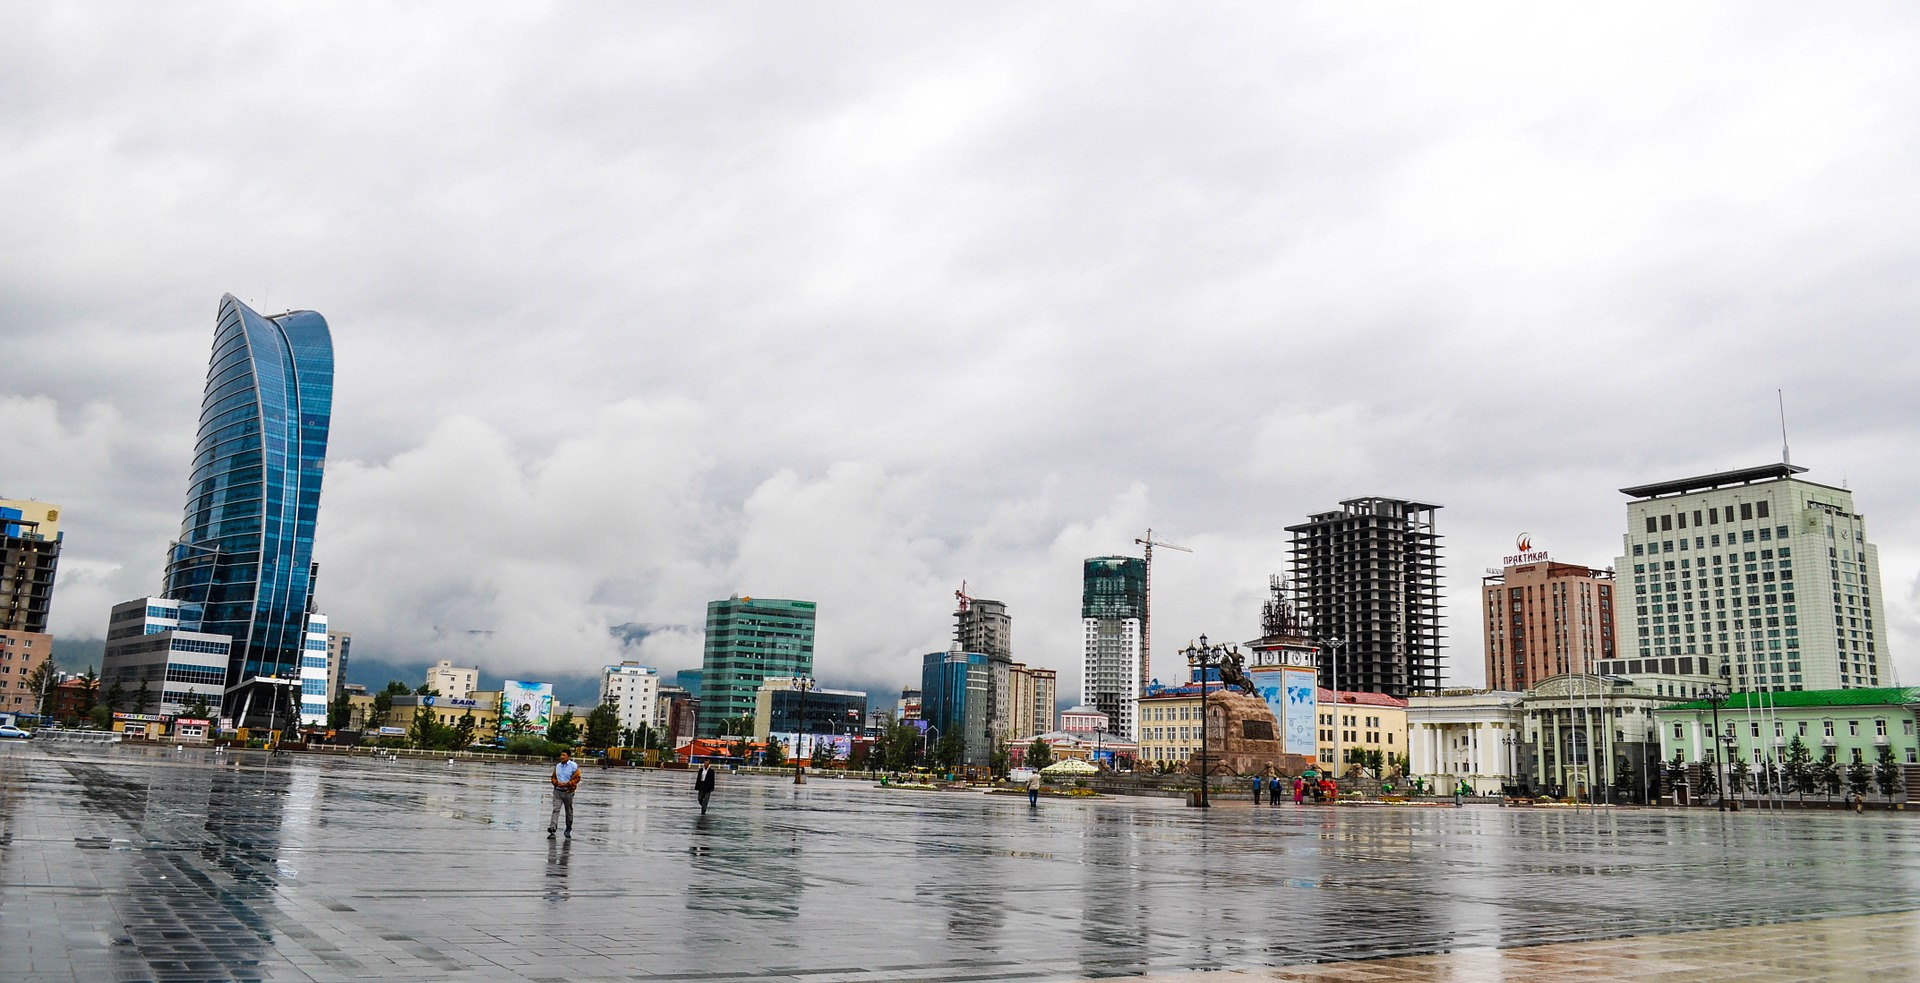 paved square in Ulaanbaatar and several tower in the background in front of a grey, cloudy sky